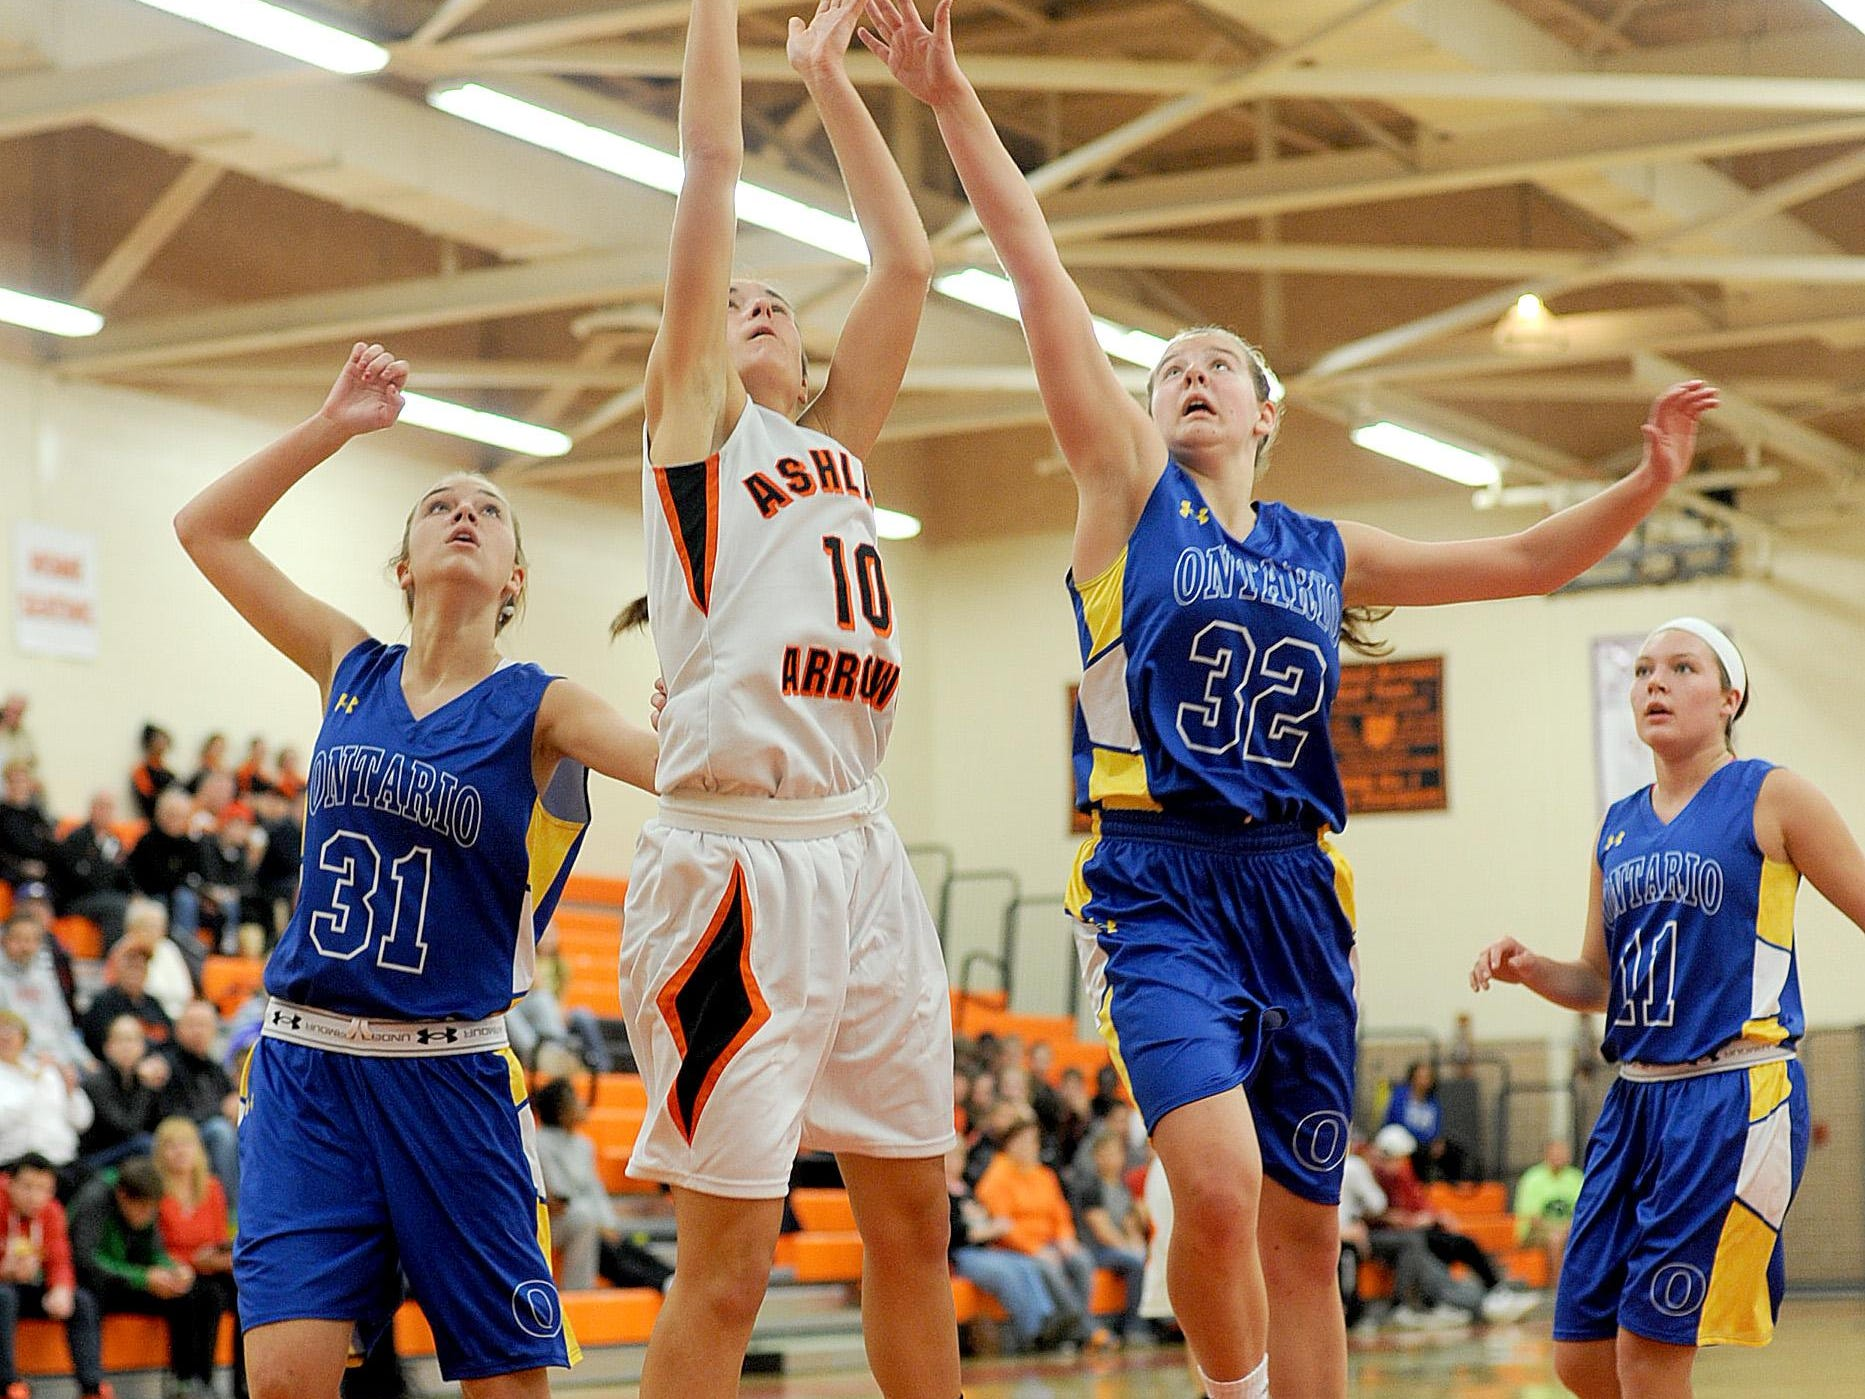 Ashland's Mady McQuate gets by Maddie Payne, Madeline Collins and Faith Nigh of Ontario on Tuesday at Ashland High School.